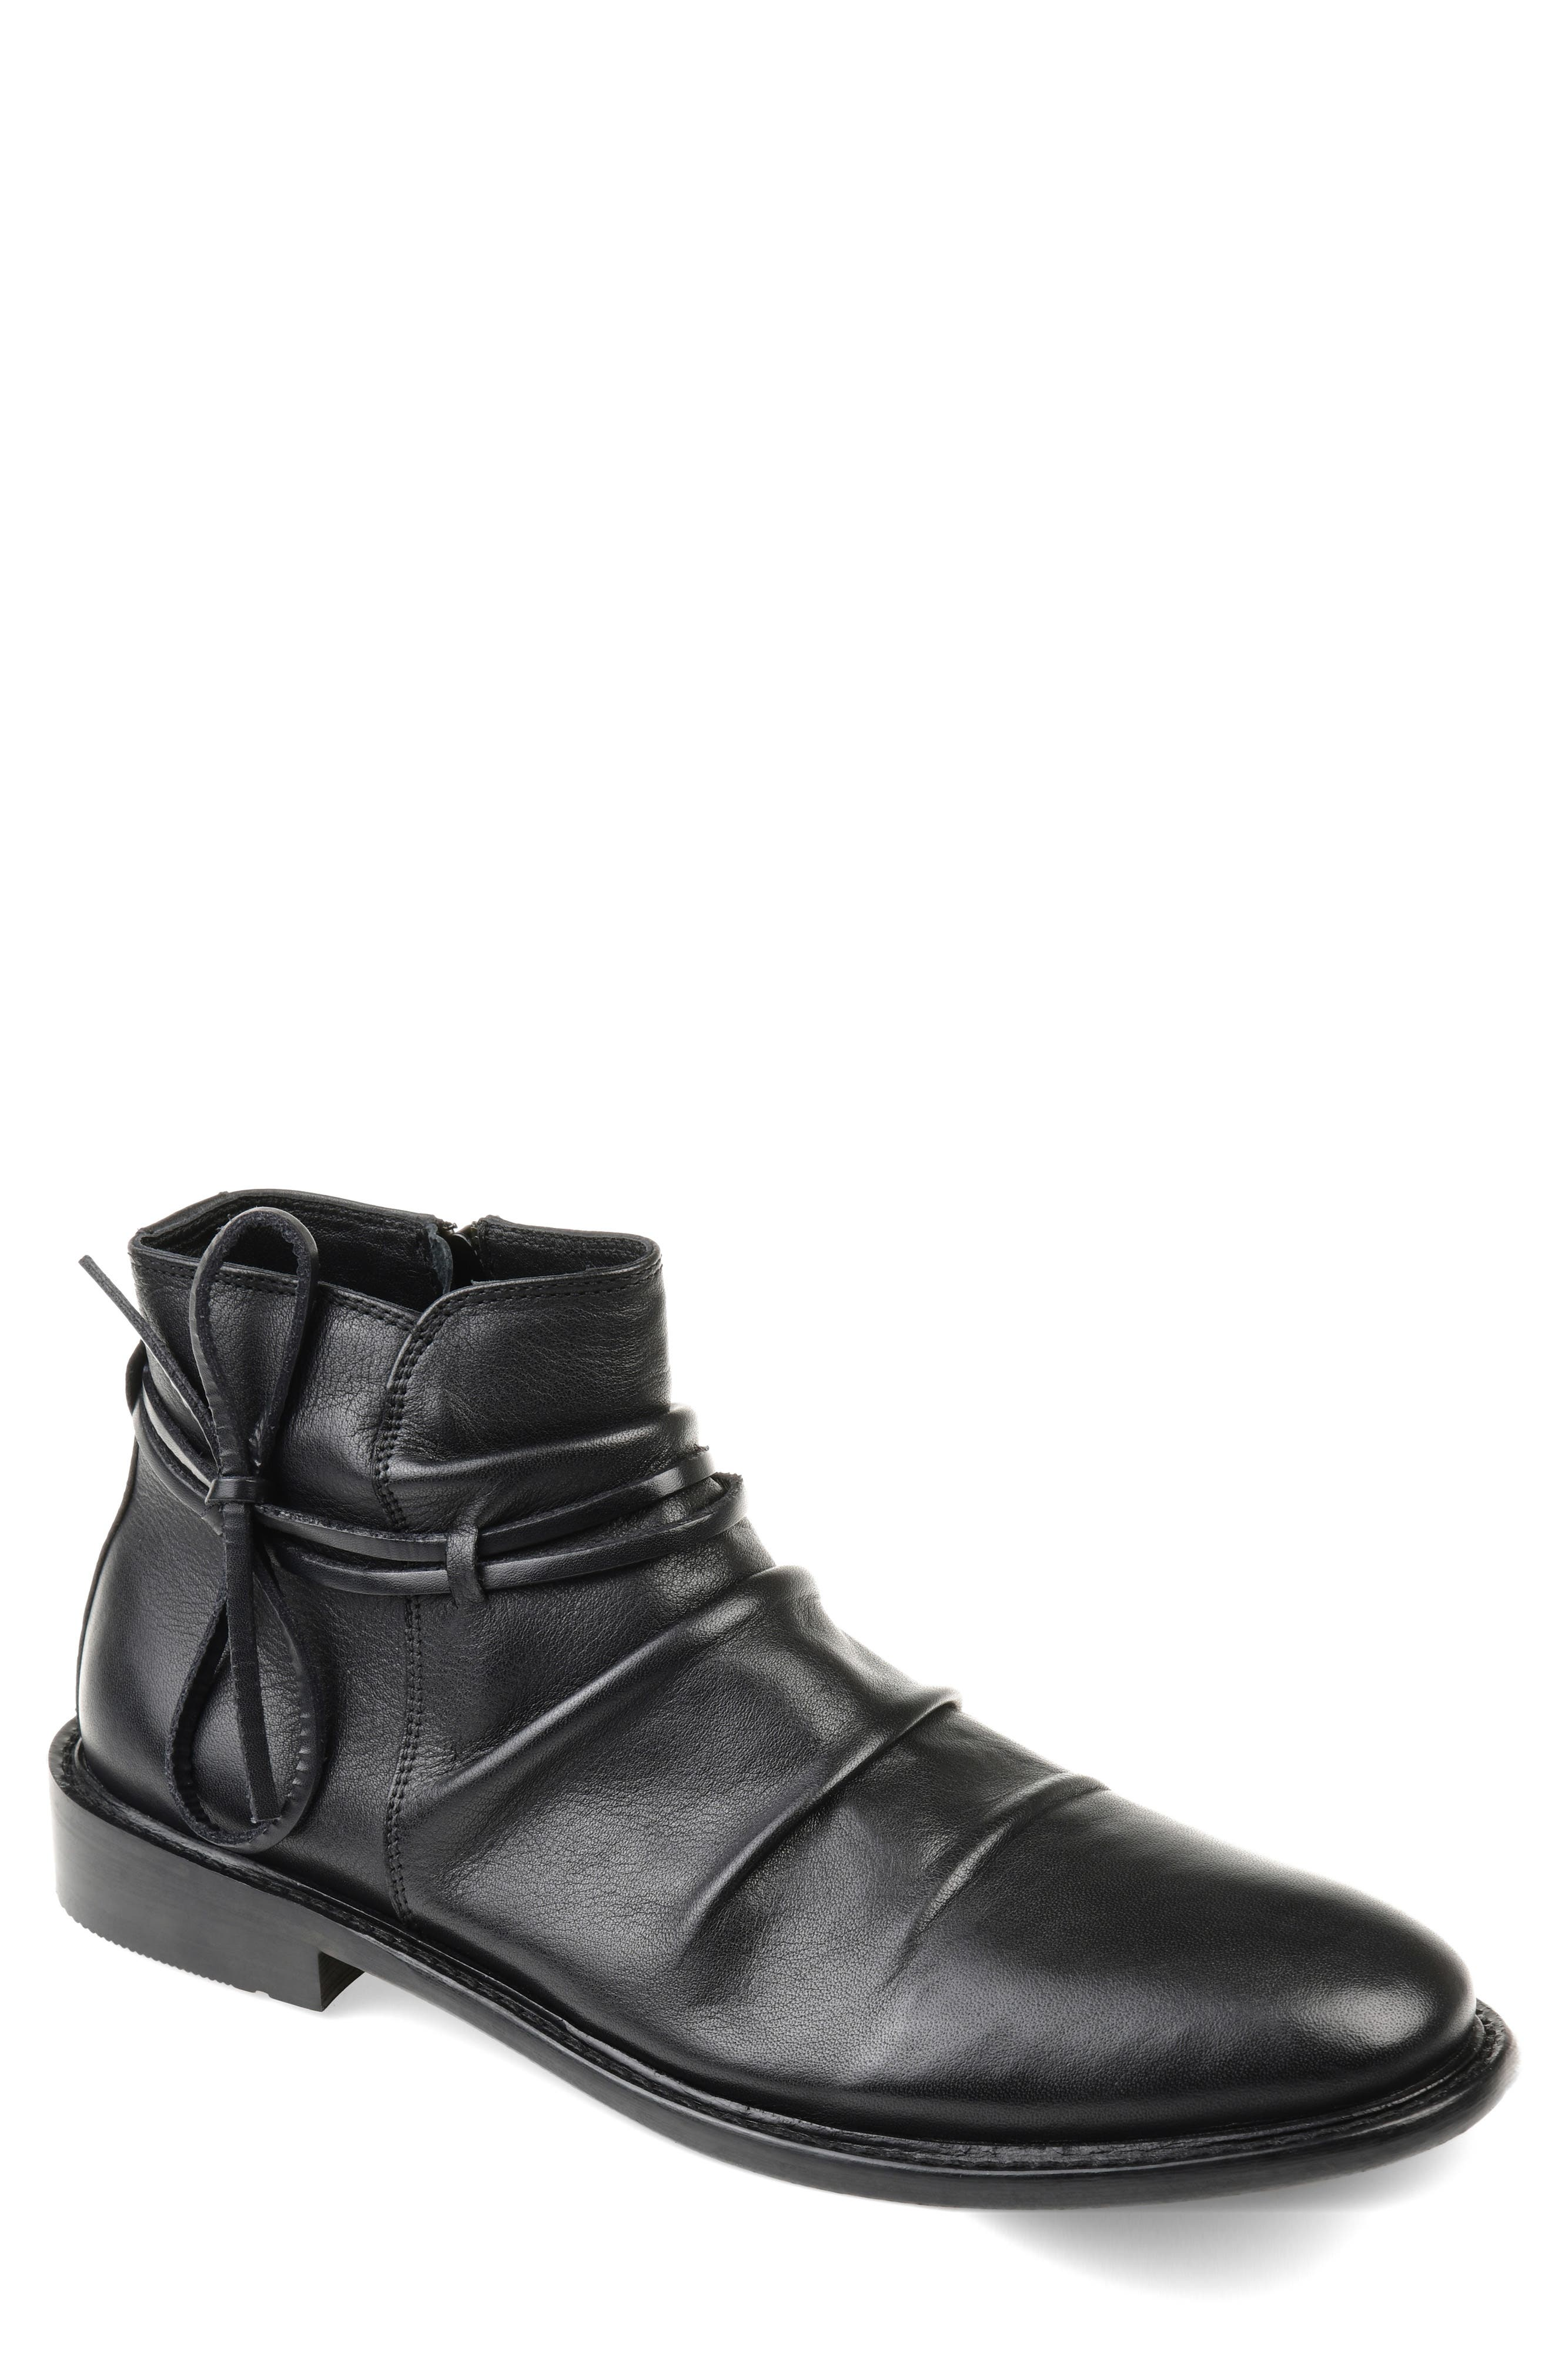 THOMAS AND VINE, Gideon Mid Rippled Boot, Main thumbnail 1, color, BLACK LEATHER